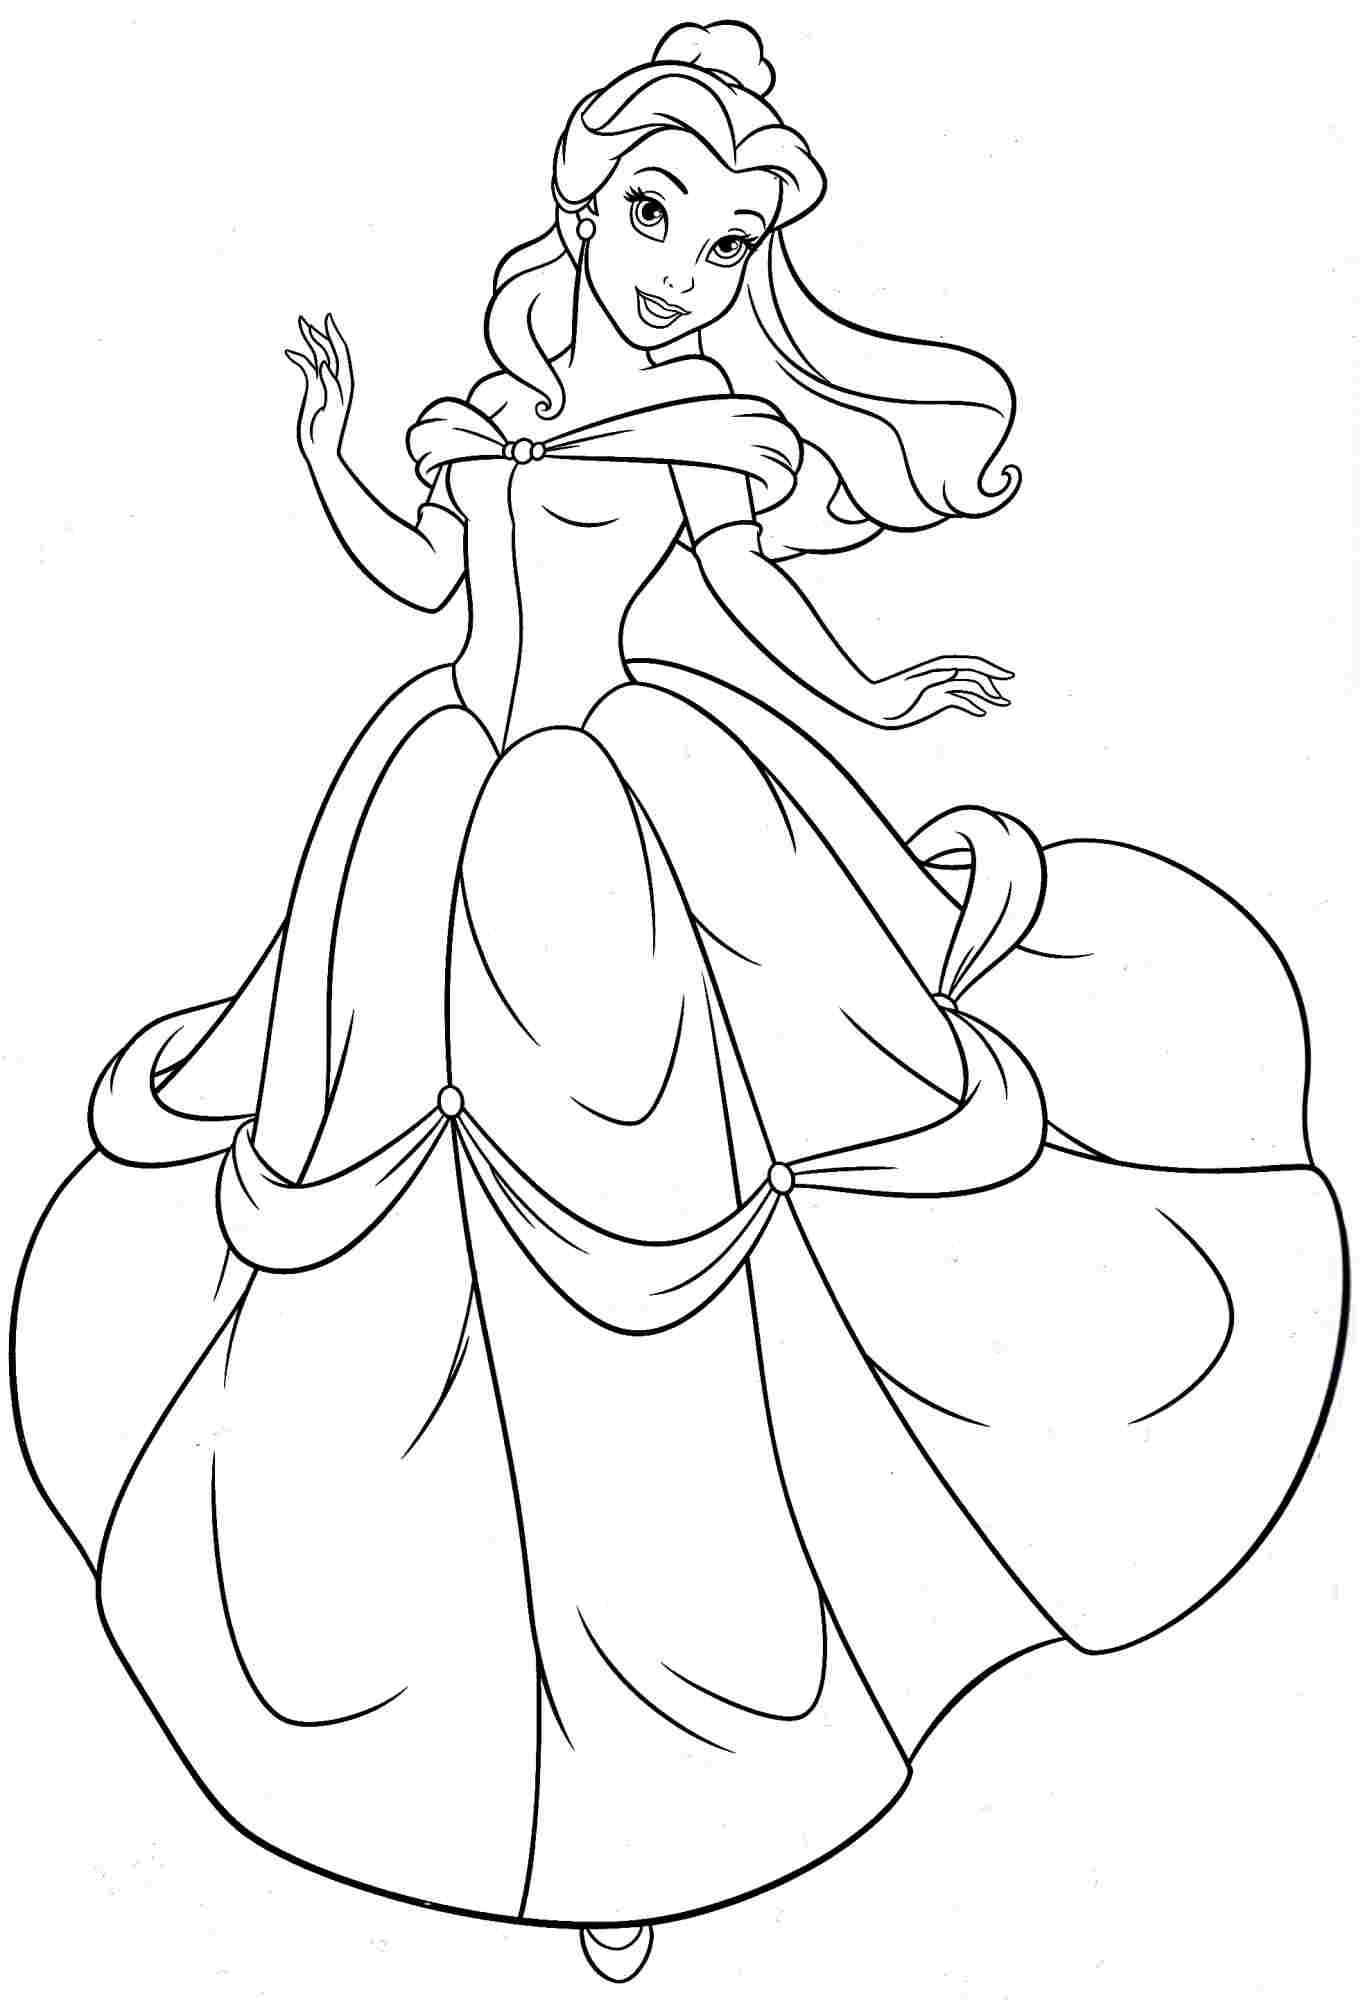 prncess coloring pages - photo#16